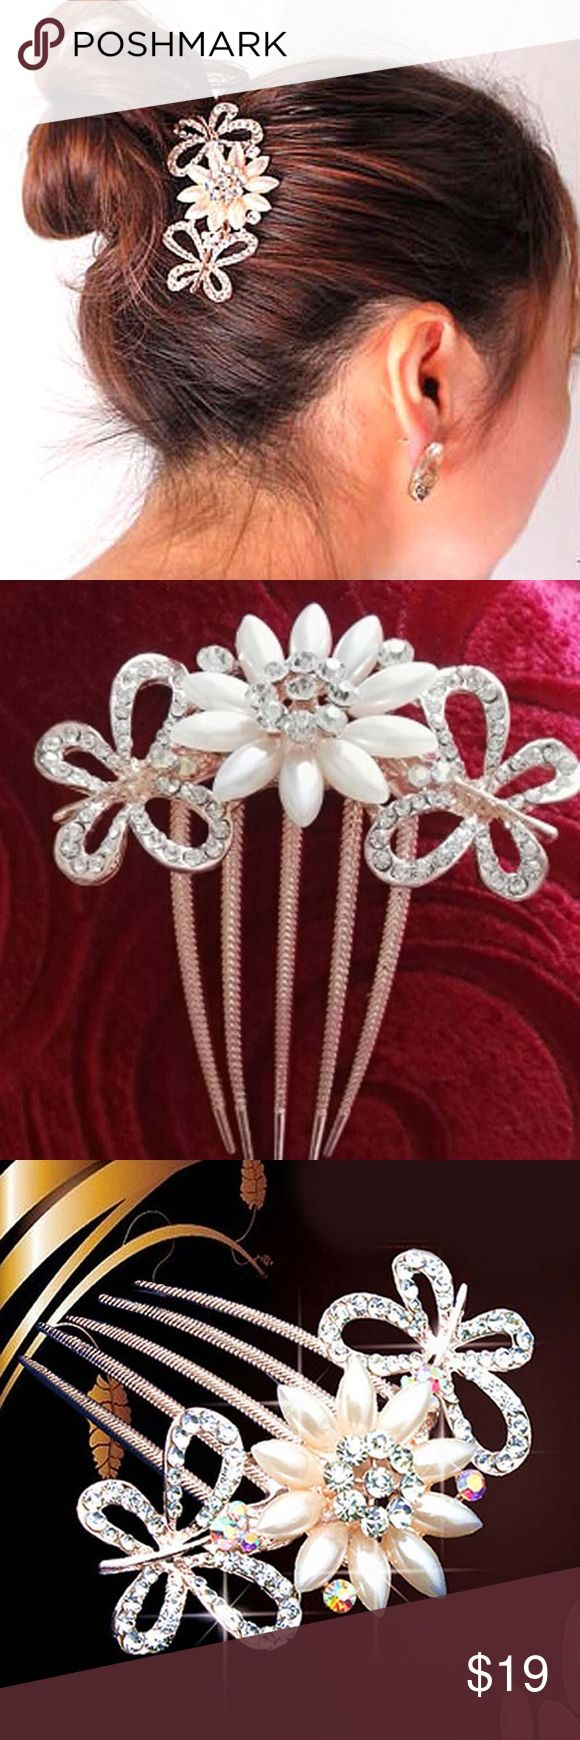 Rose Gold Crystal Pearl Bridal Hair Comb GPHC004 This stunning rose gold plated crystal rhinestone bridal hair comb looks exceptionally gorgeous on the side or back of an up-do, or half up half down hairstyle. I wouldn't recommend it for thin hair unless you're going to use it to adorn some sort of twist, braid, bun or updo.  If your hair is thin use a few bobby pins to help anchor the comb into place and keep it secure. Metal Alloy:  Rose Gold Plate, Nickle-free, Lead-free, Faux Pearls, Austria